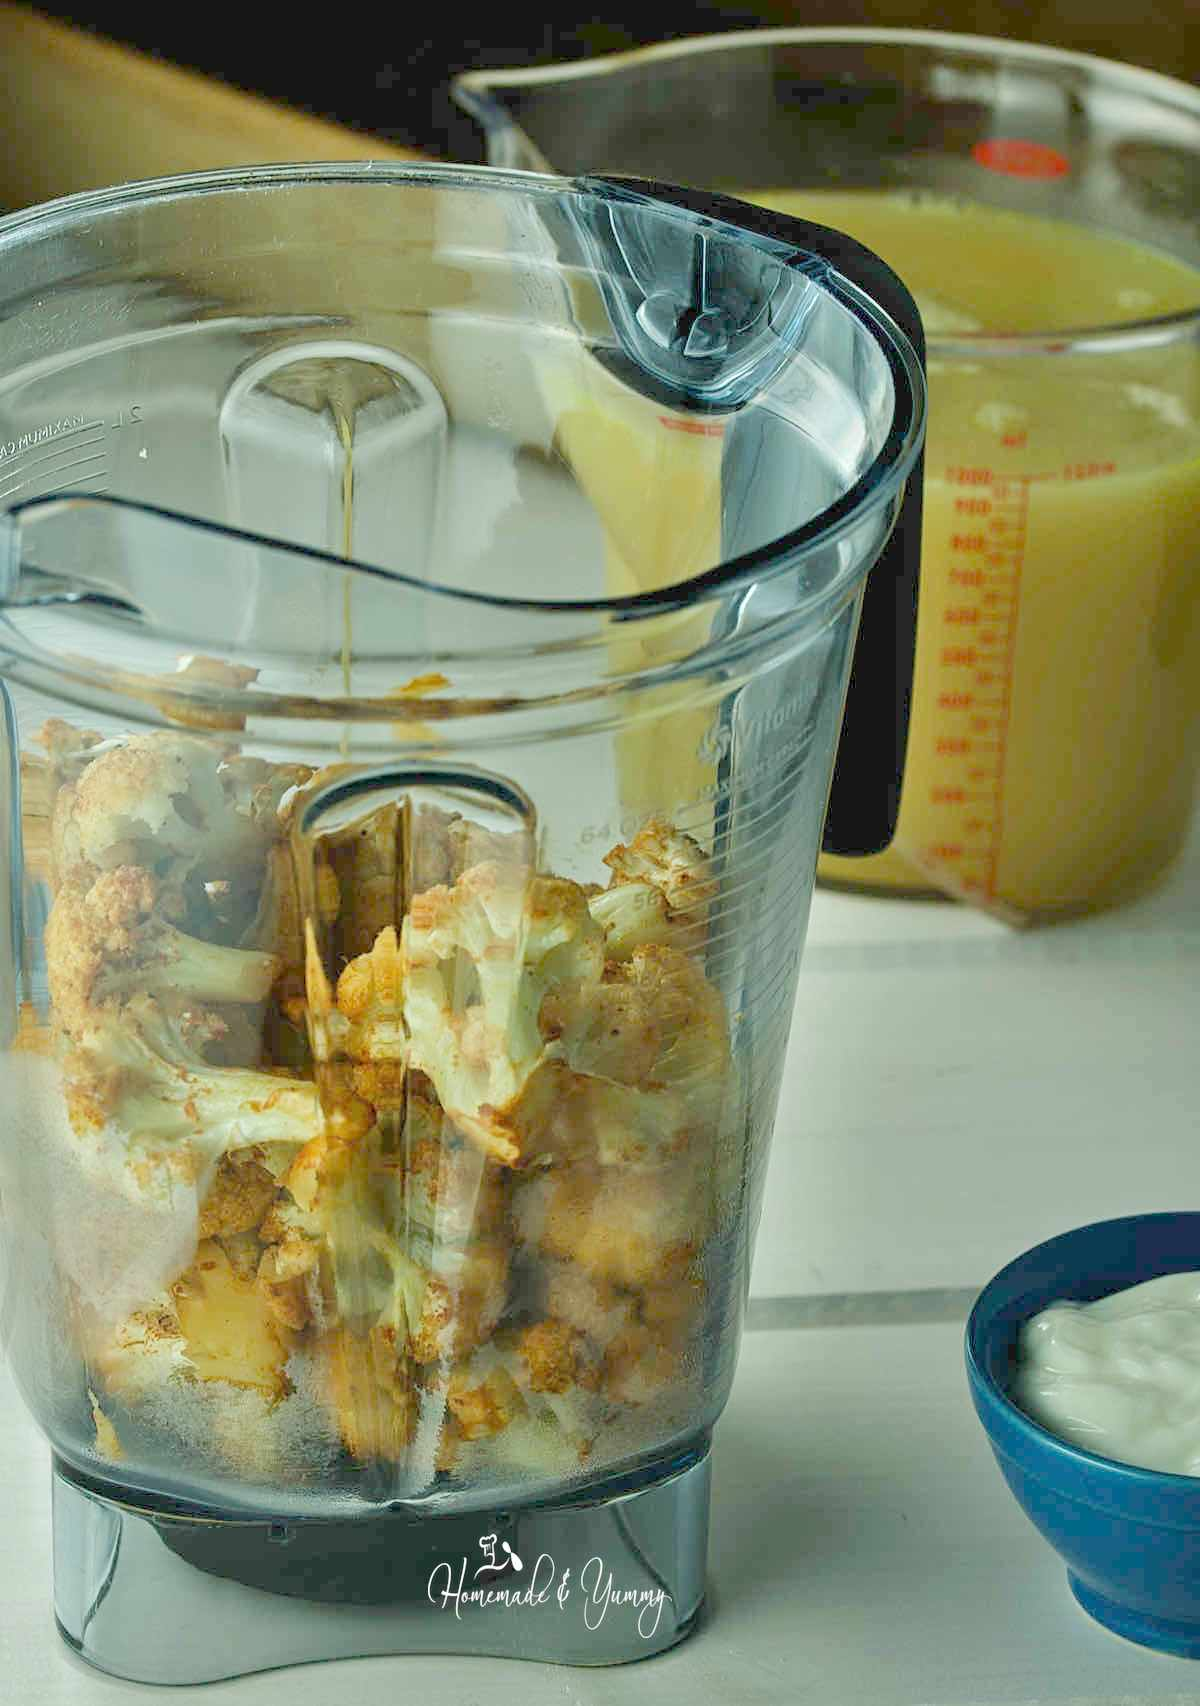 Pieces of roasted cauliflower in a blender.